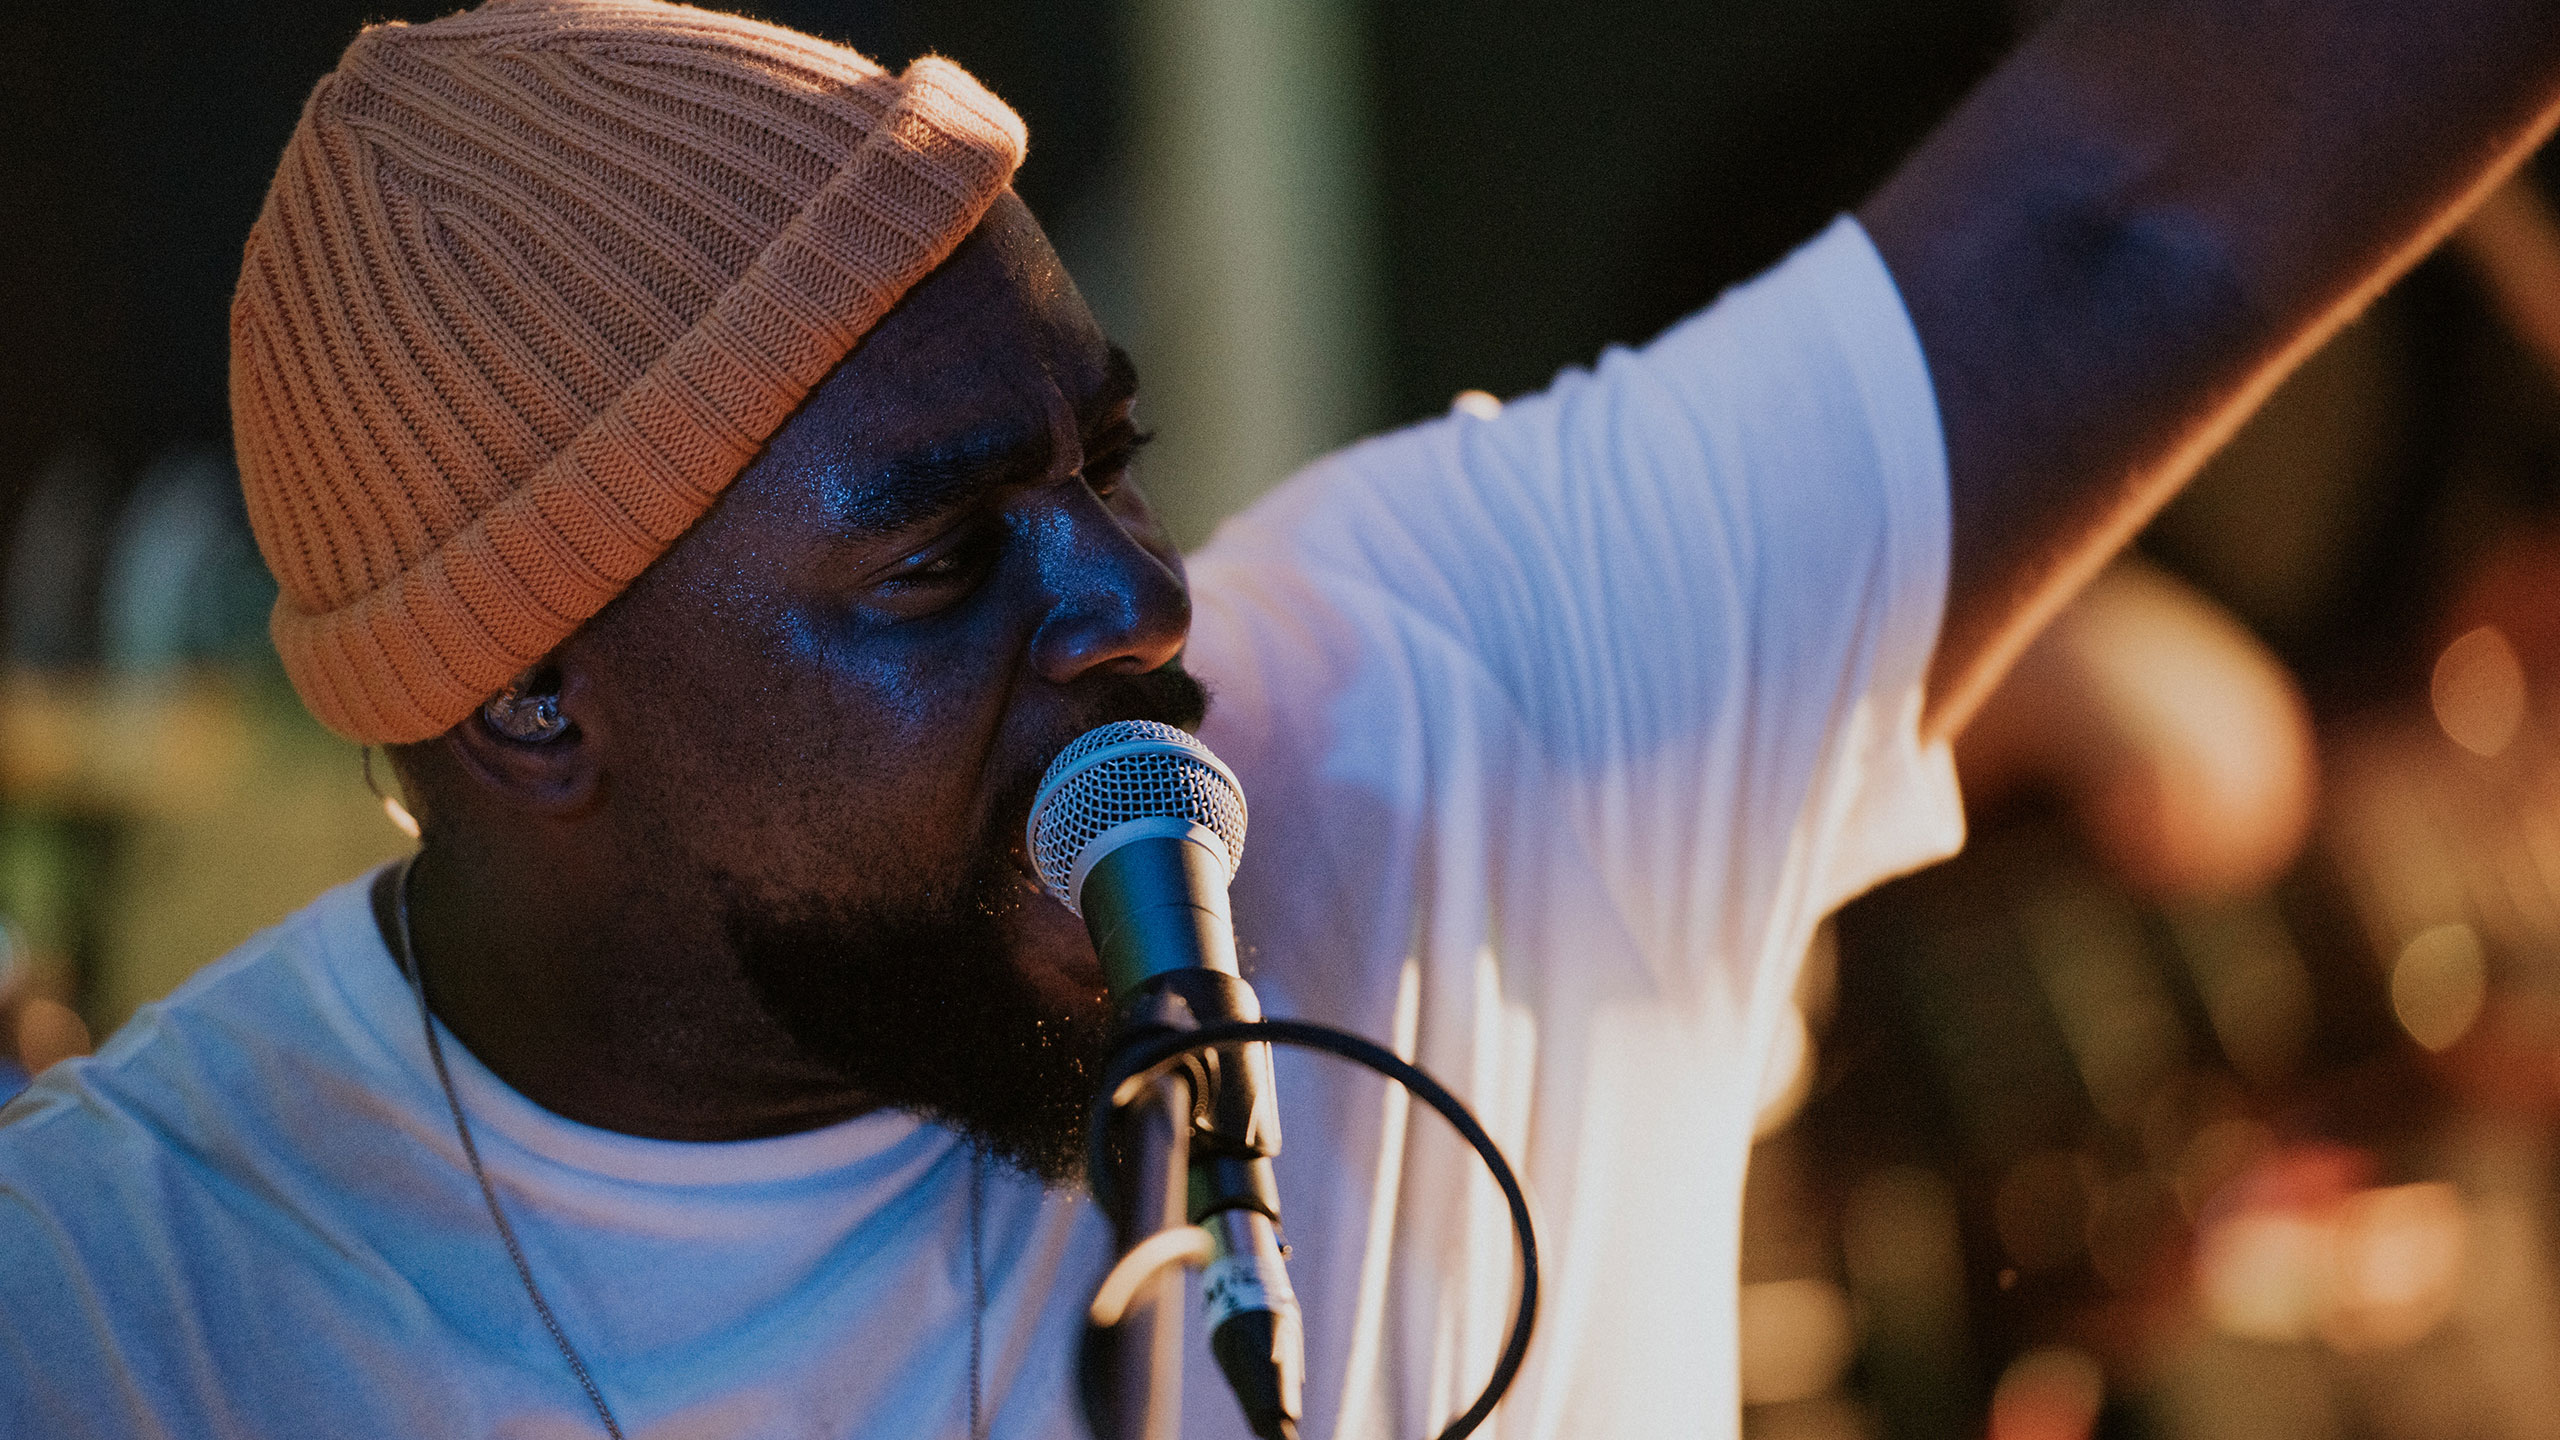 A close up photo of Jodie Abacus, wearing an orange beanie and white t shirt, singing into the microphone and raising his left arm at PRS for Music Presents